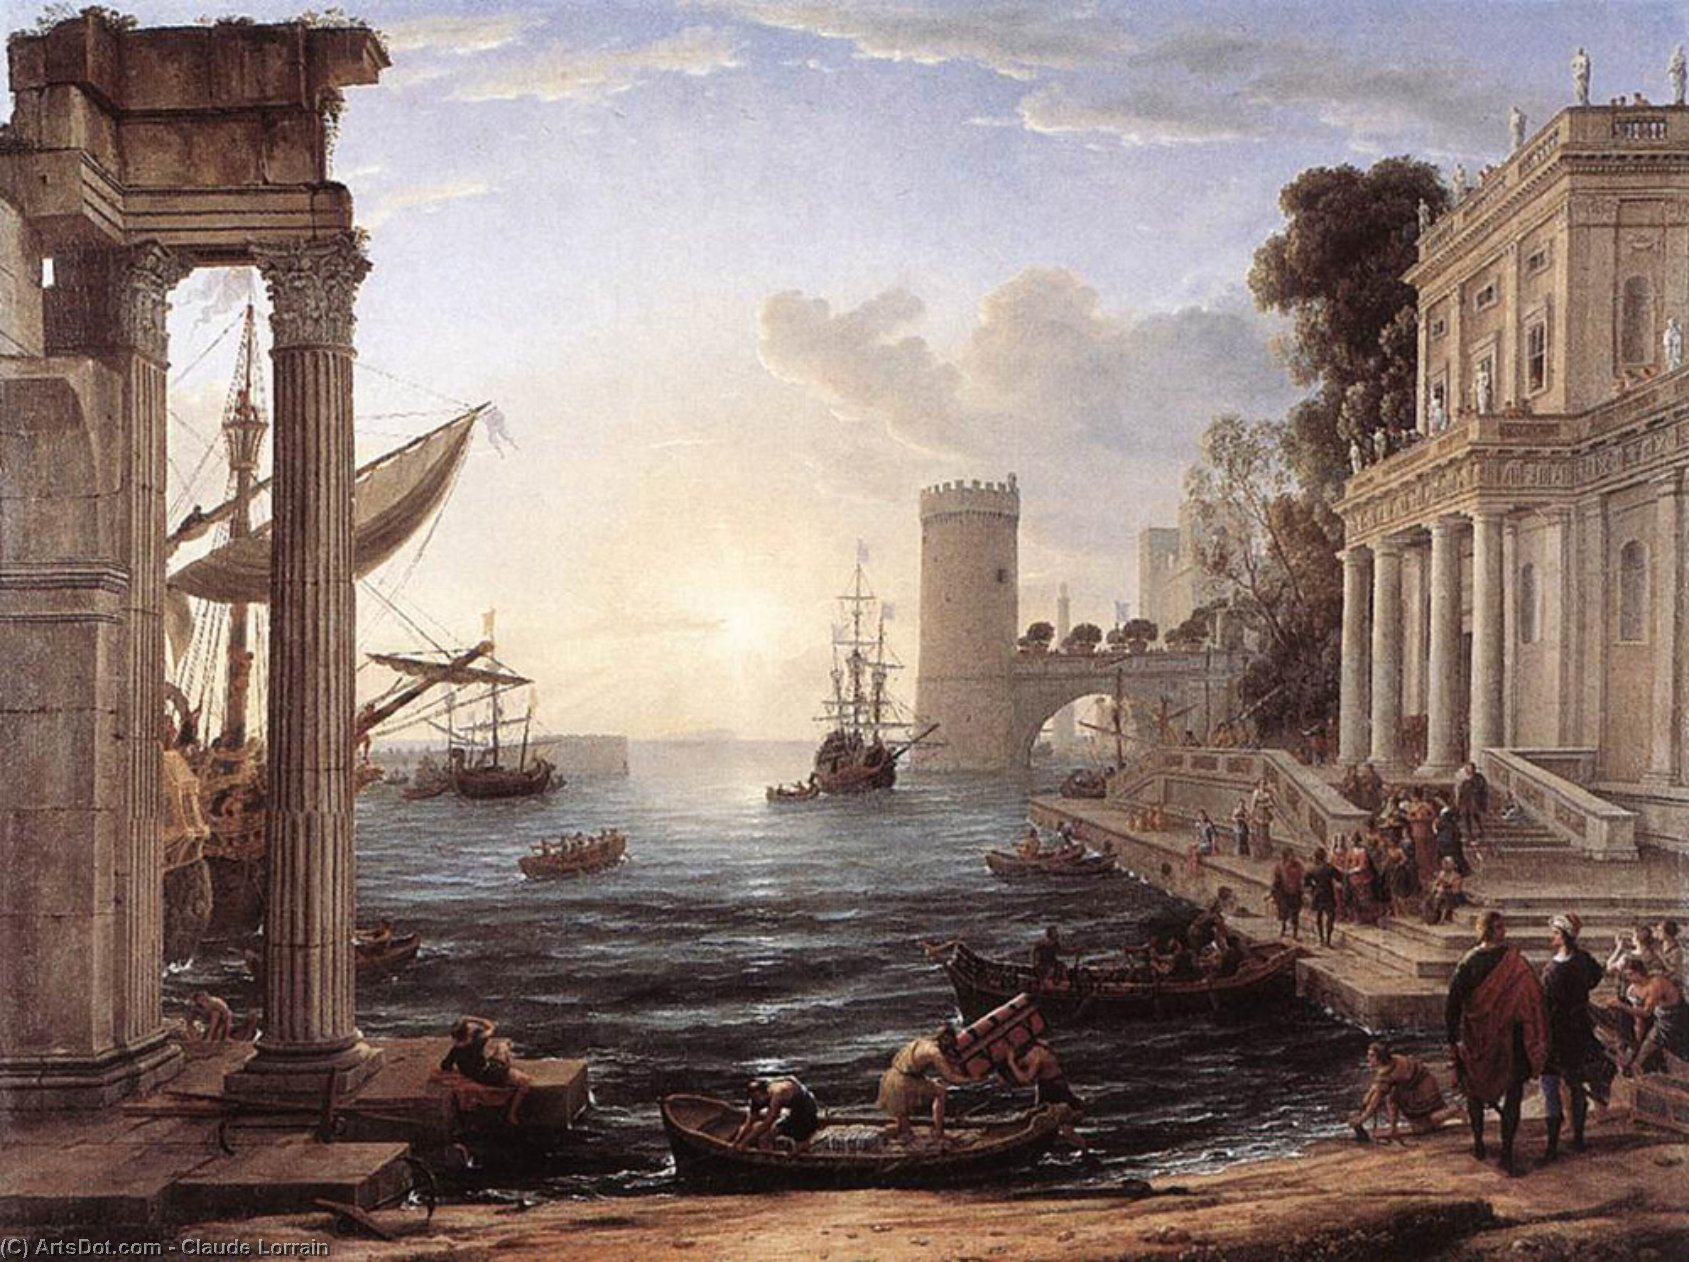 Seaport with the Embarkation of the Queen of Sheba, 1648 by Claude Lorrain (Claude Gellée) | Art Reproduction | ArtsDot.com